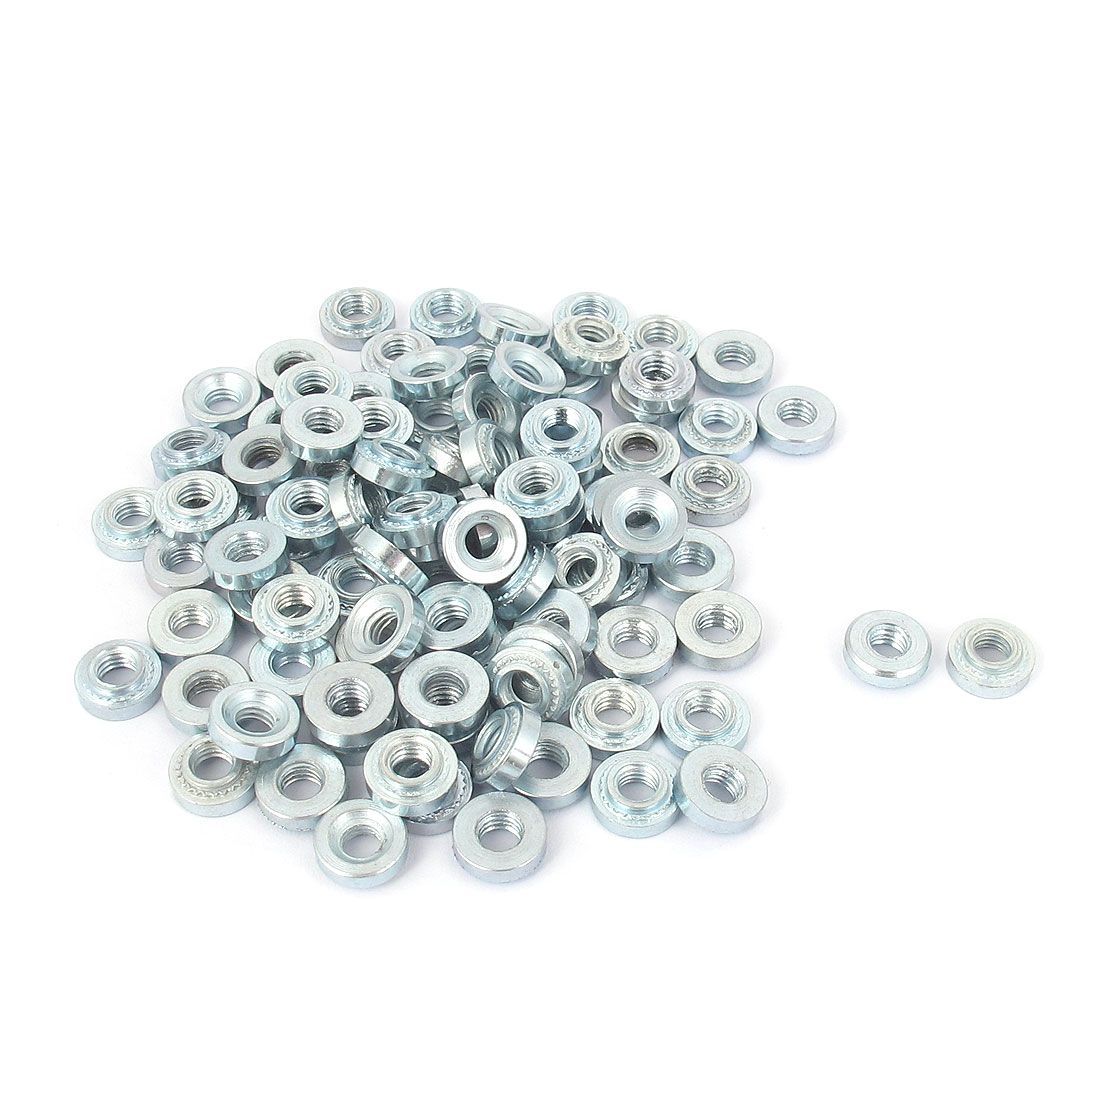 M4 Zinc Plated Self Clinching Rivet Nut Fastener 100pcs for 1mm Thin Plates